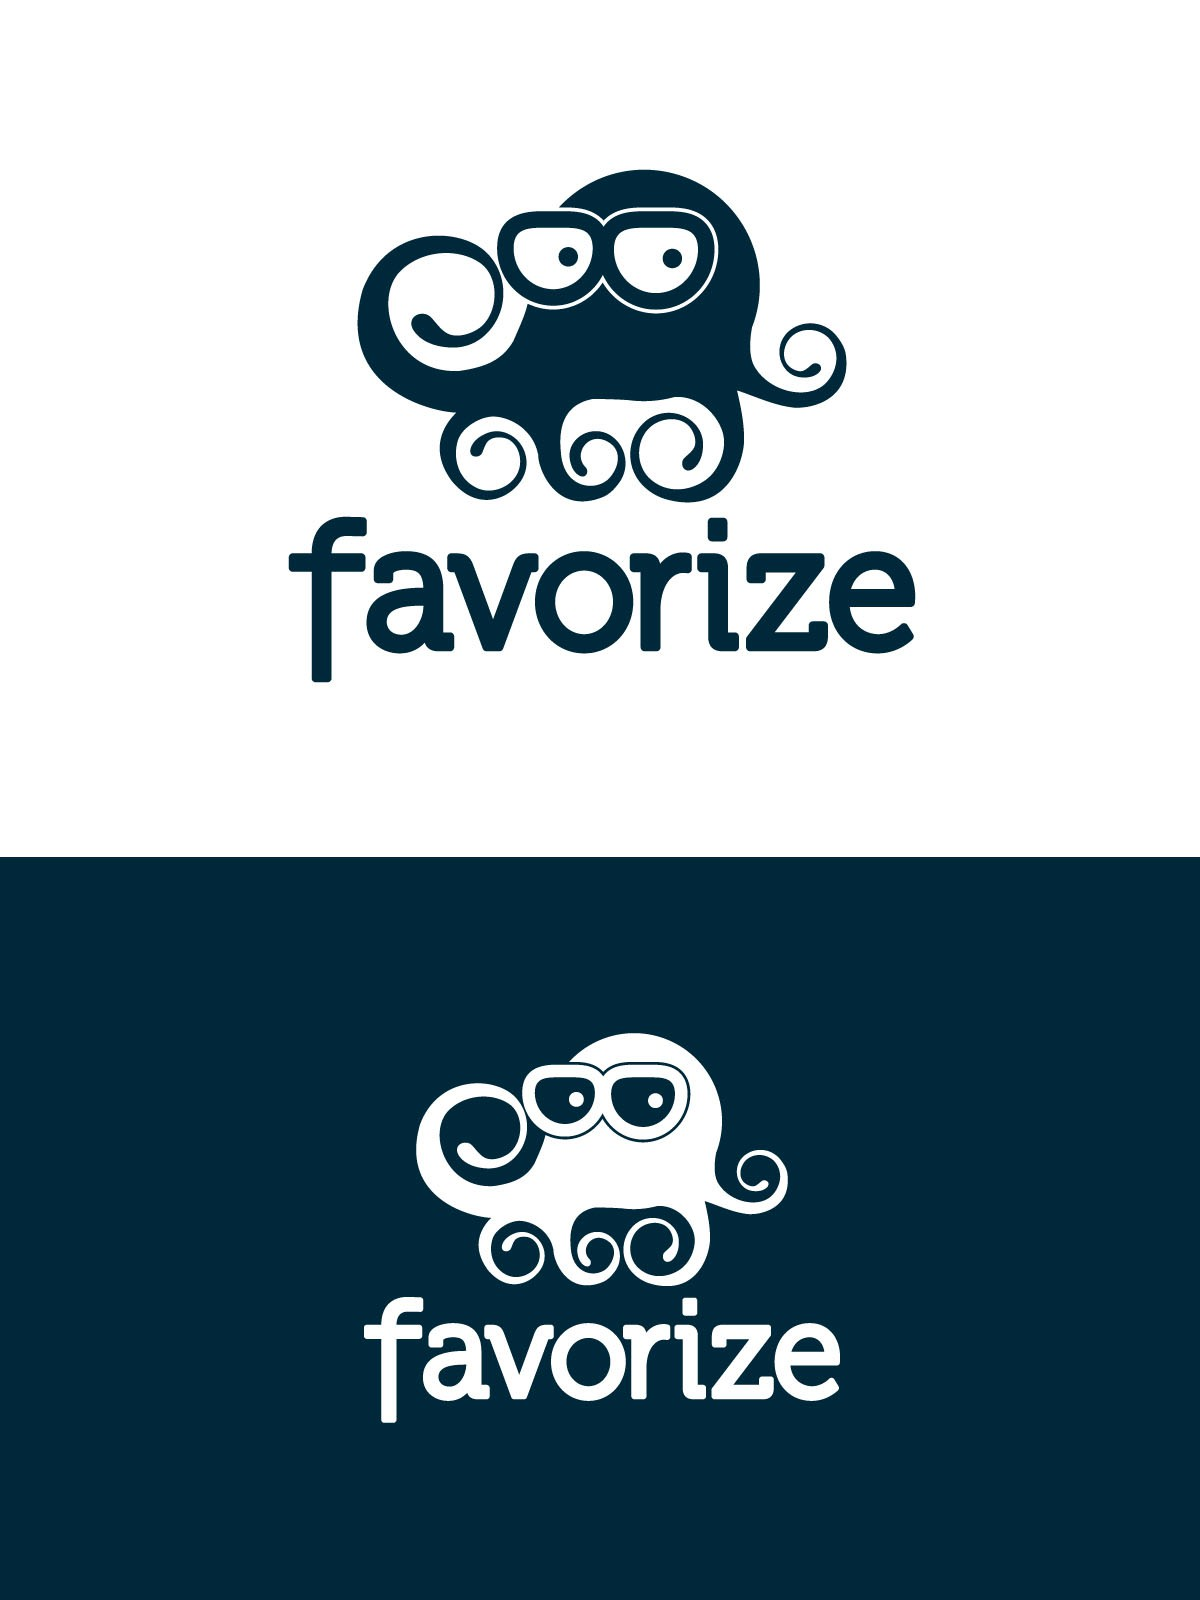 Favorize needs a fresh new logo!